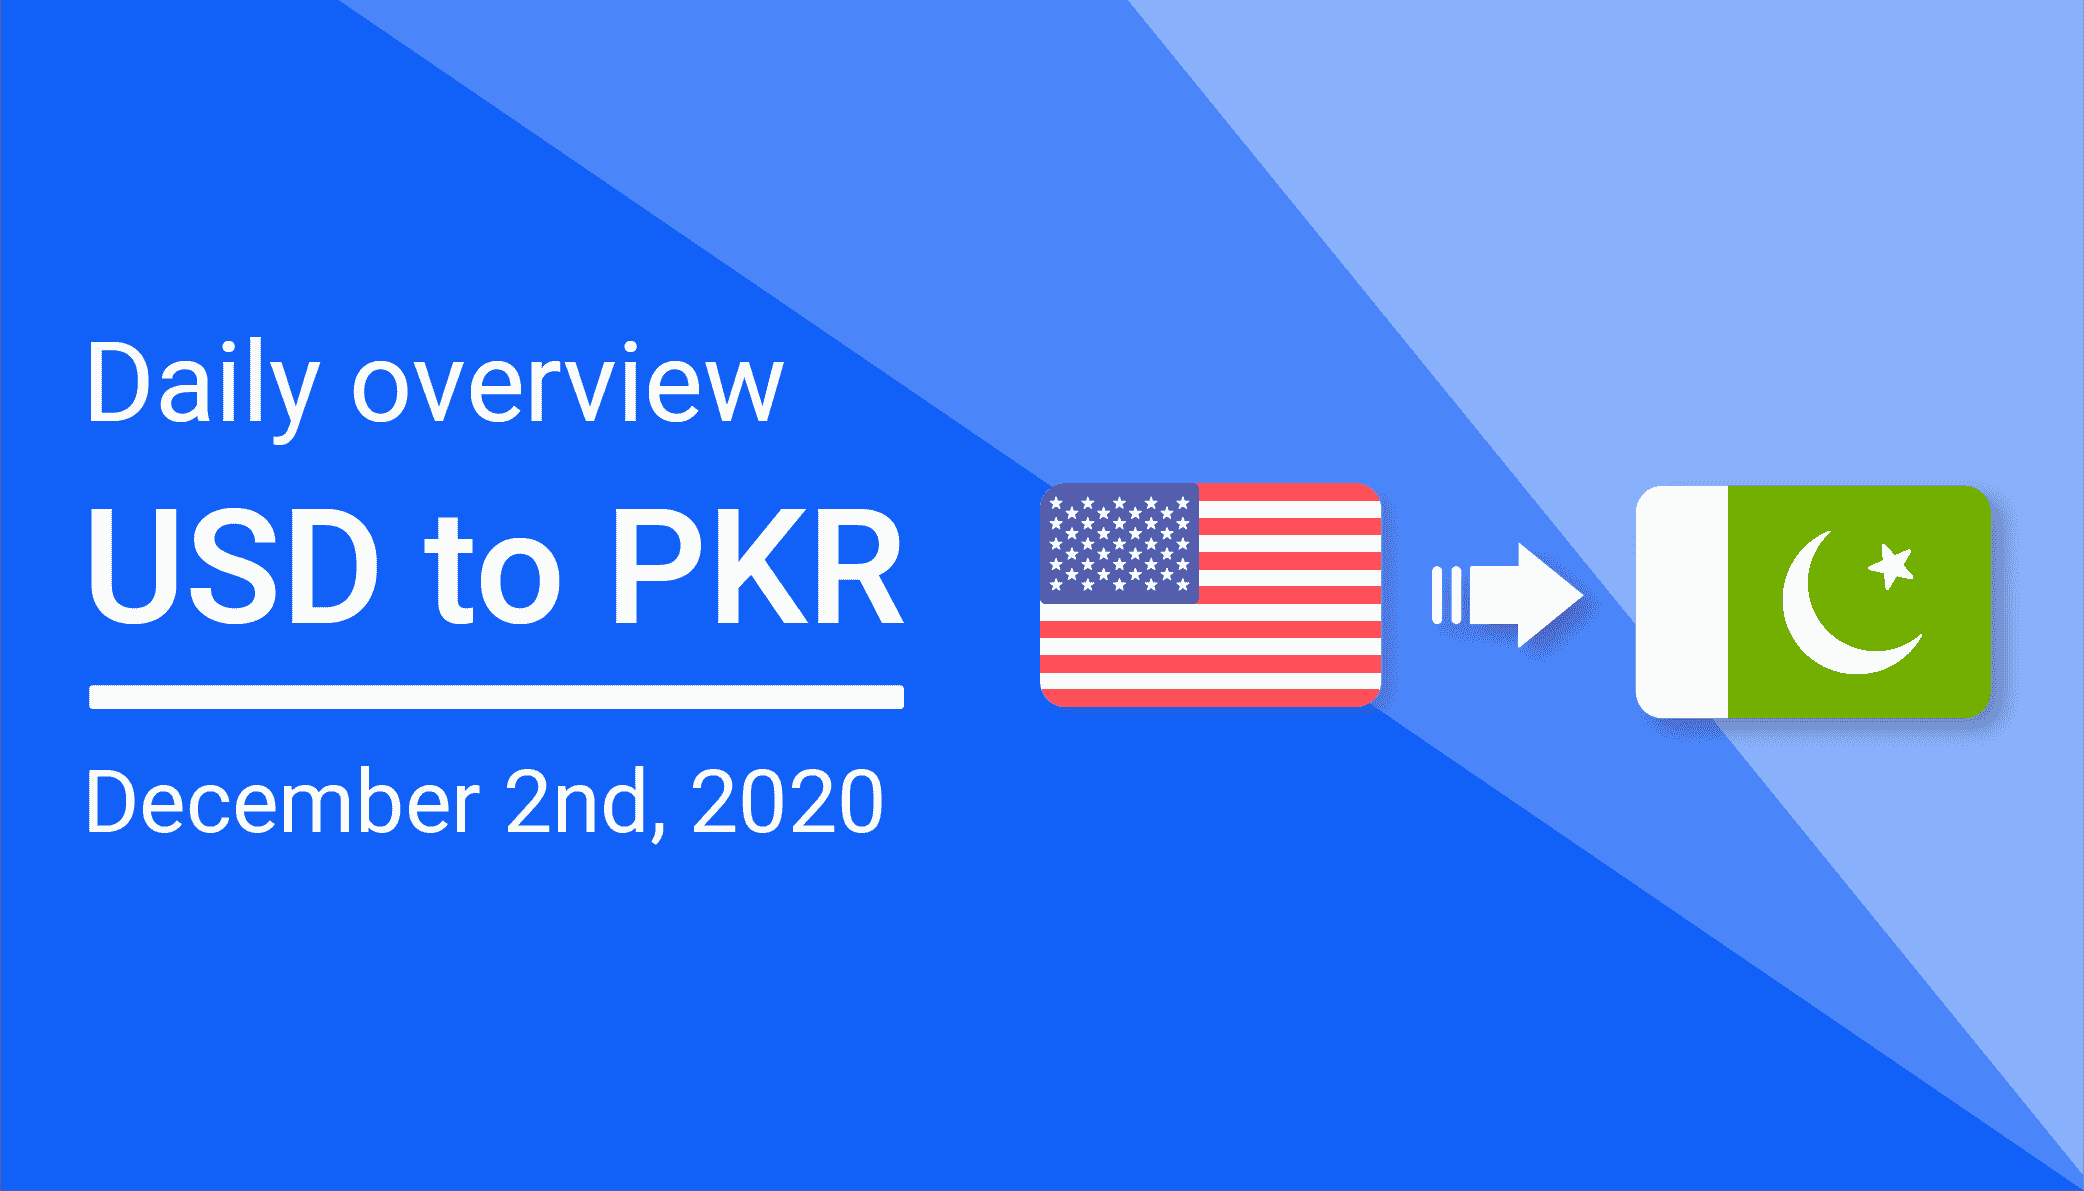 USD to PKR Daily Overview: December 2nd